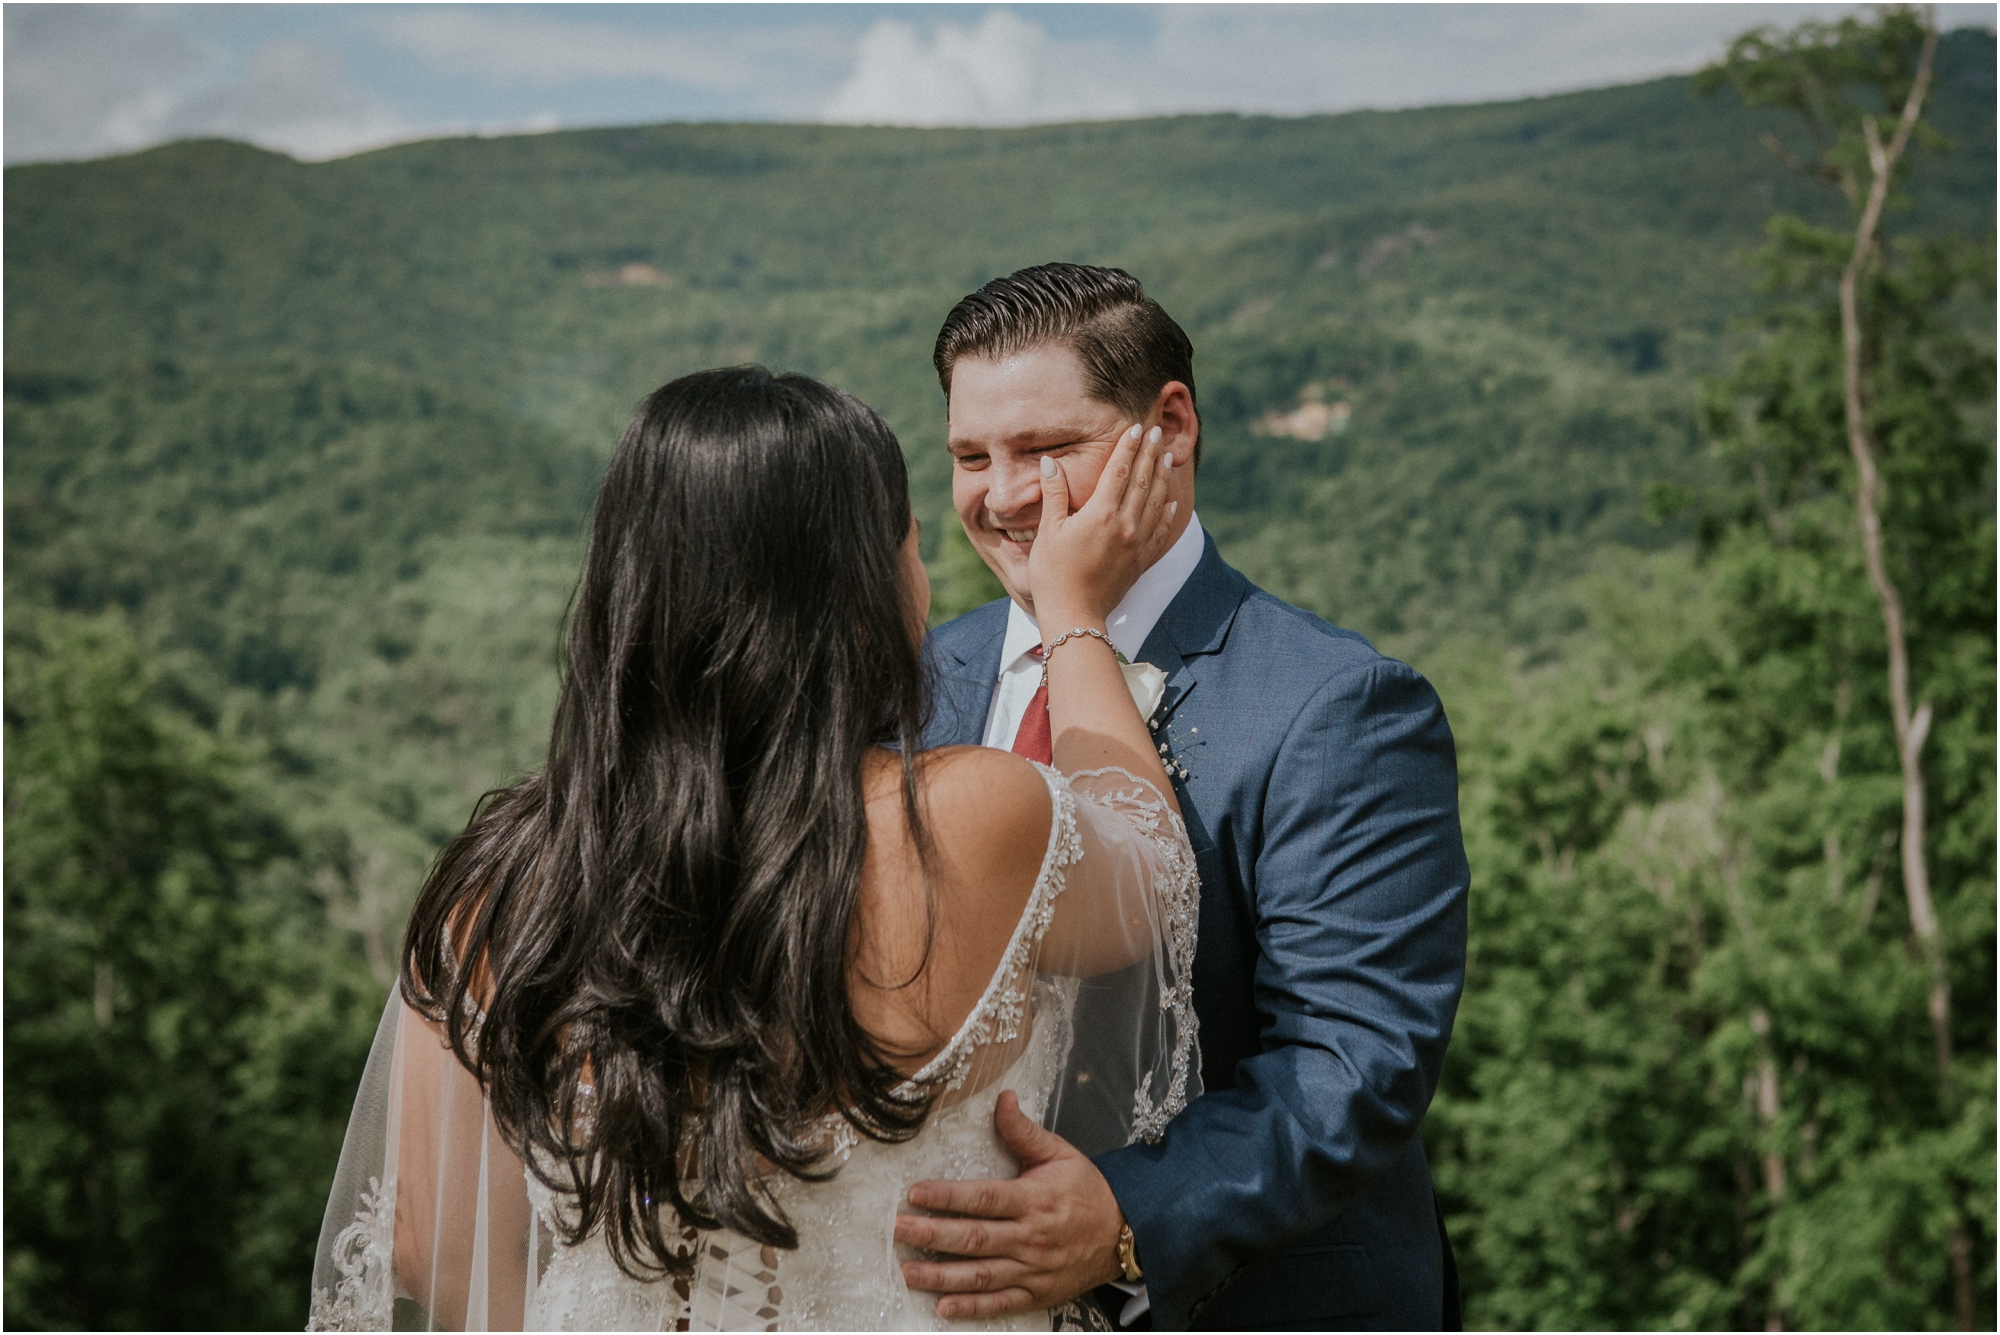 first-looks-wedding-planning-tips-timeline-groom-bride-katy-sergent-photography-northeast-tennessee-adventurous-wedding-elopement_0006.jpg